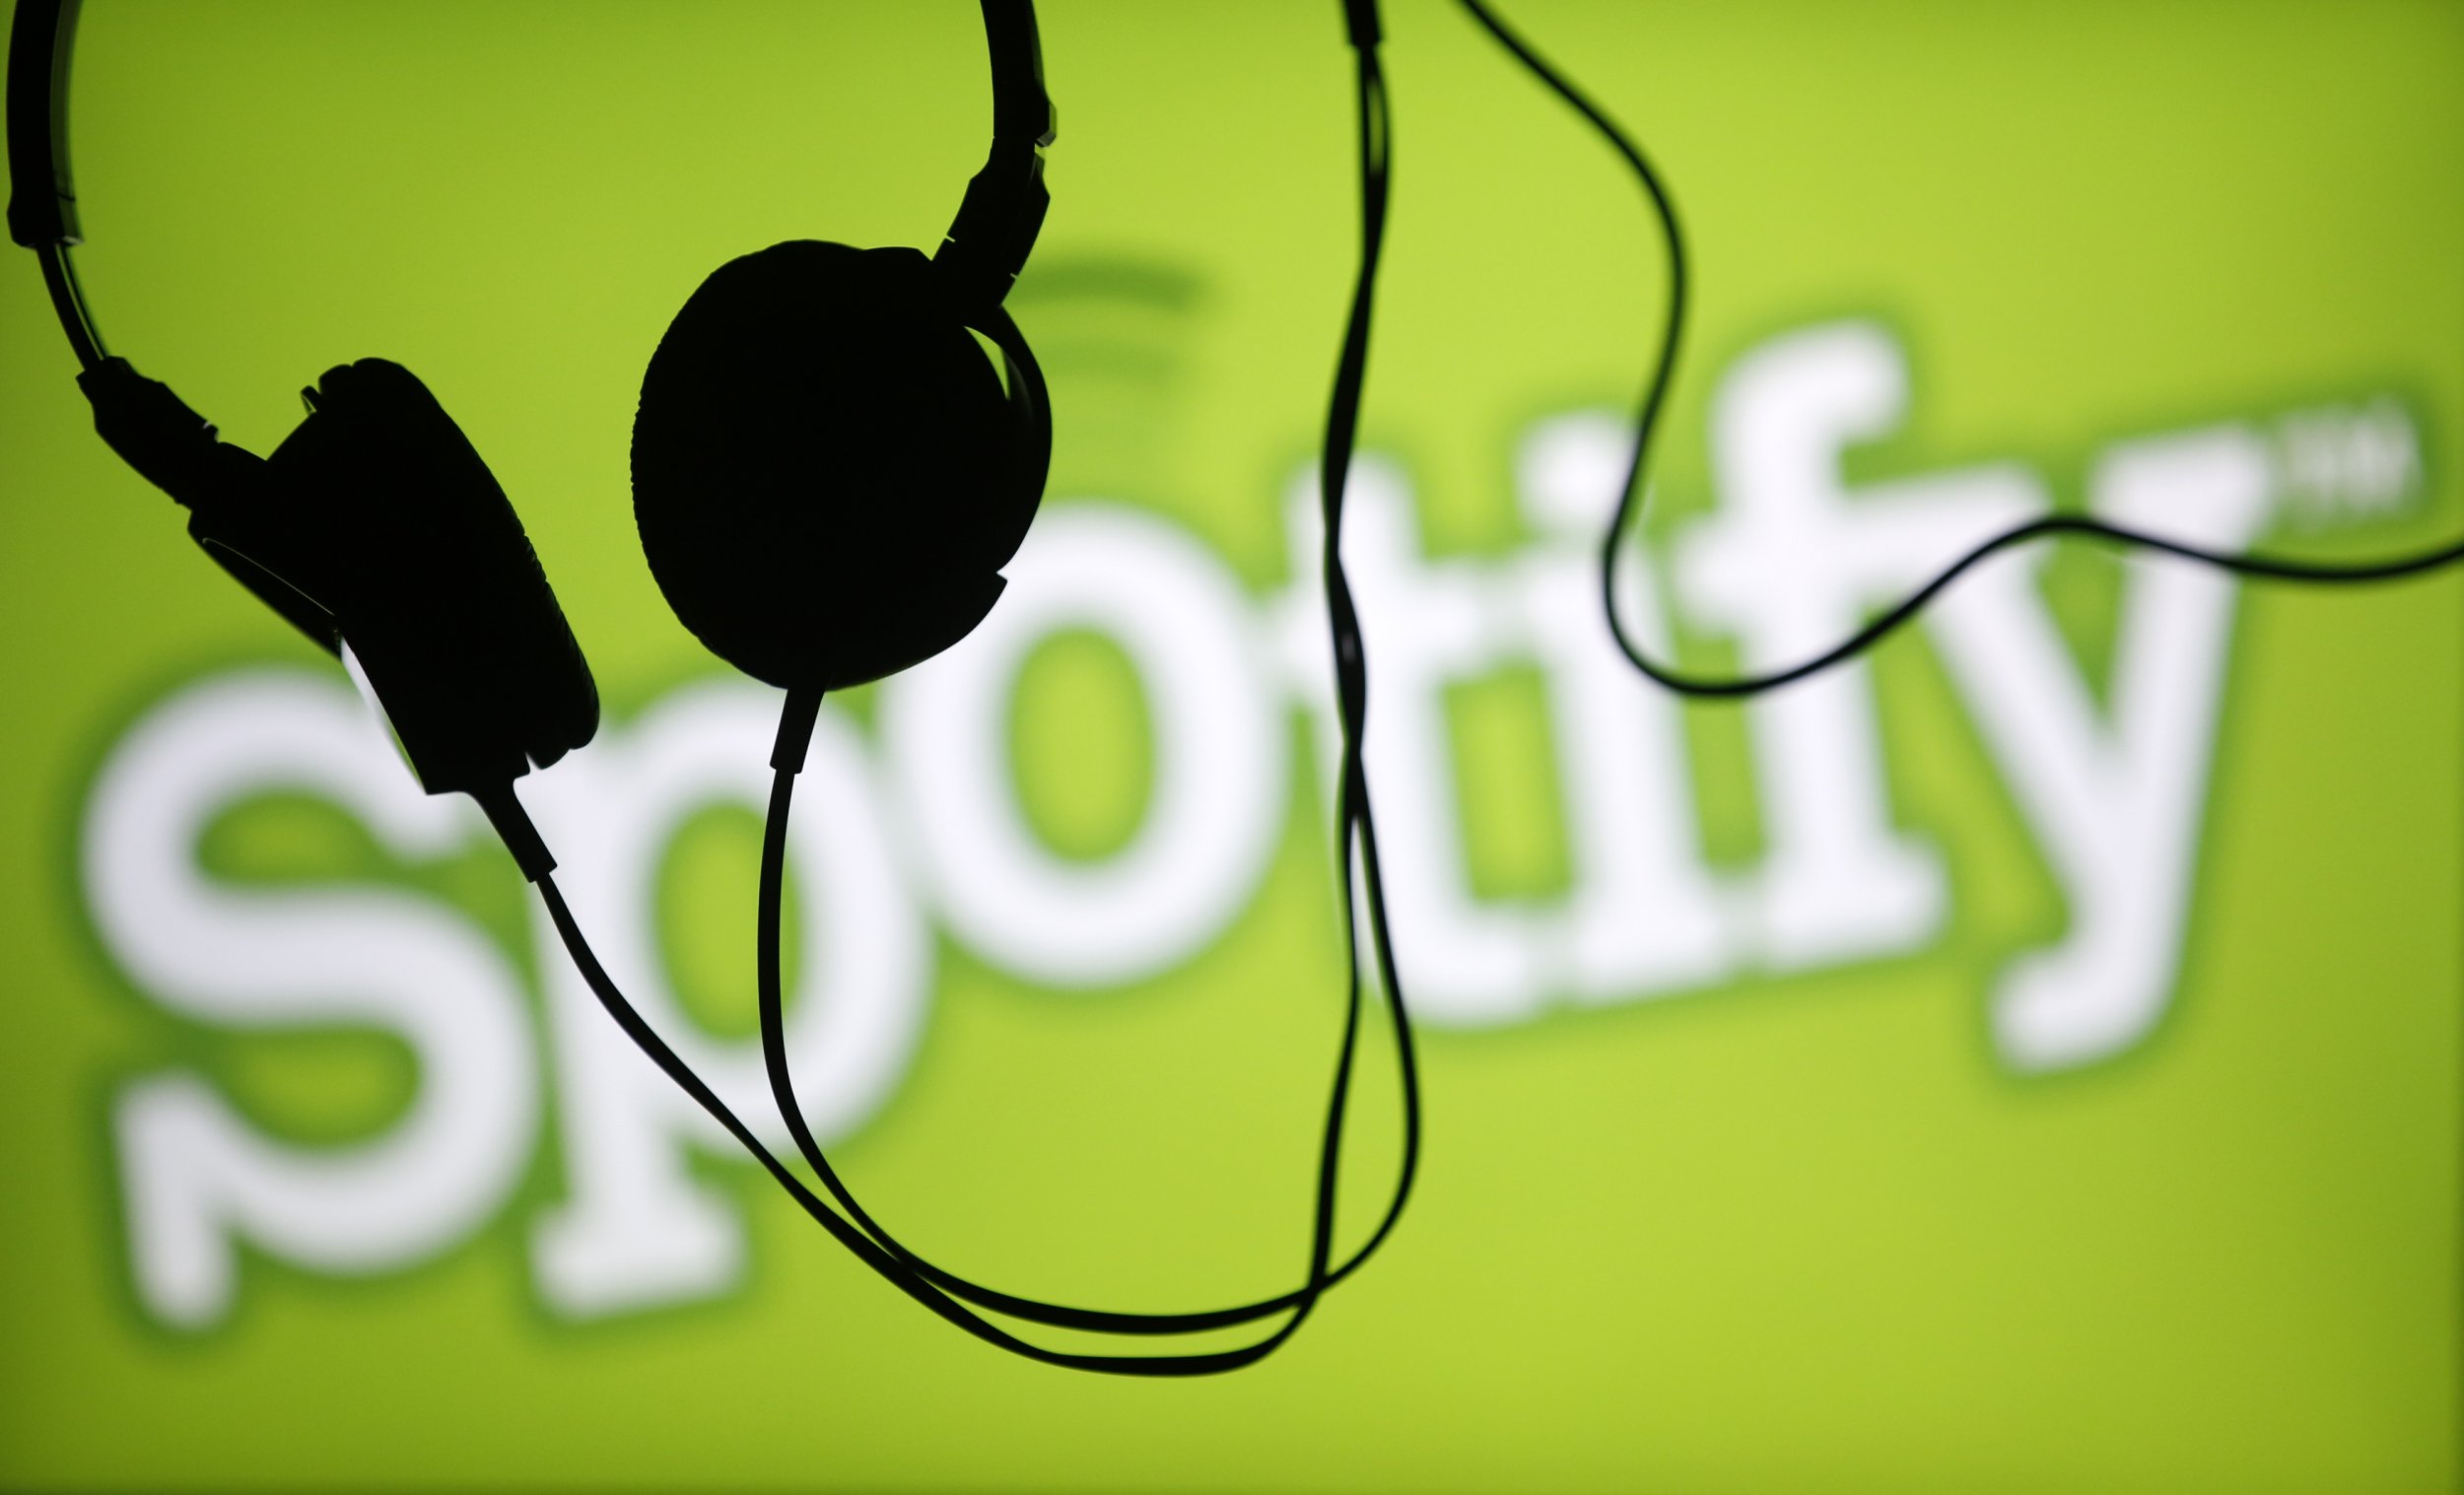 Spotify: Using 'Hacked' Apps to Get Free Music Will Result